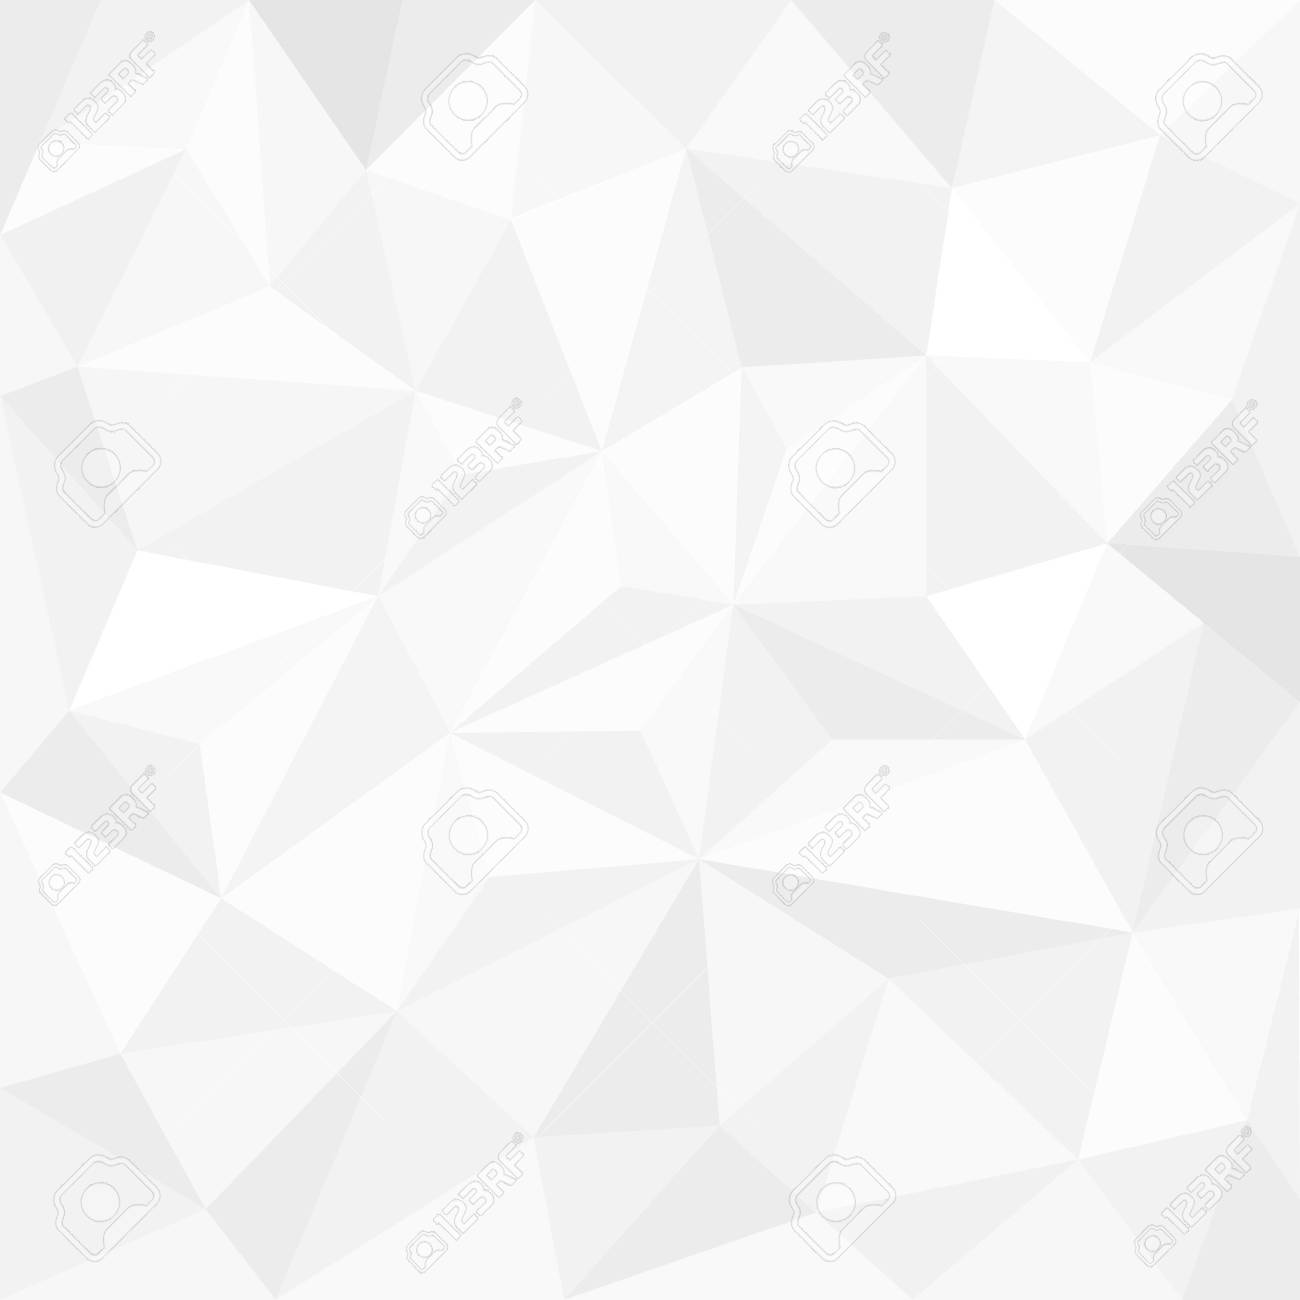 Abstract white background with triangles - 35769843